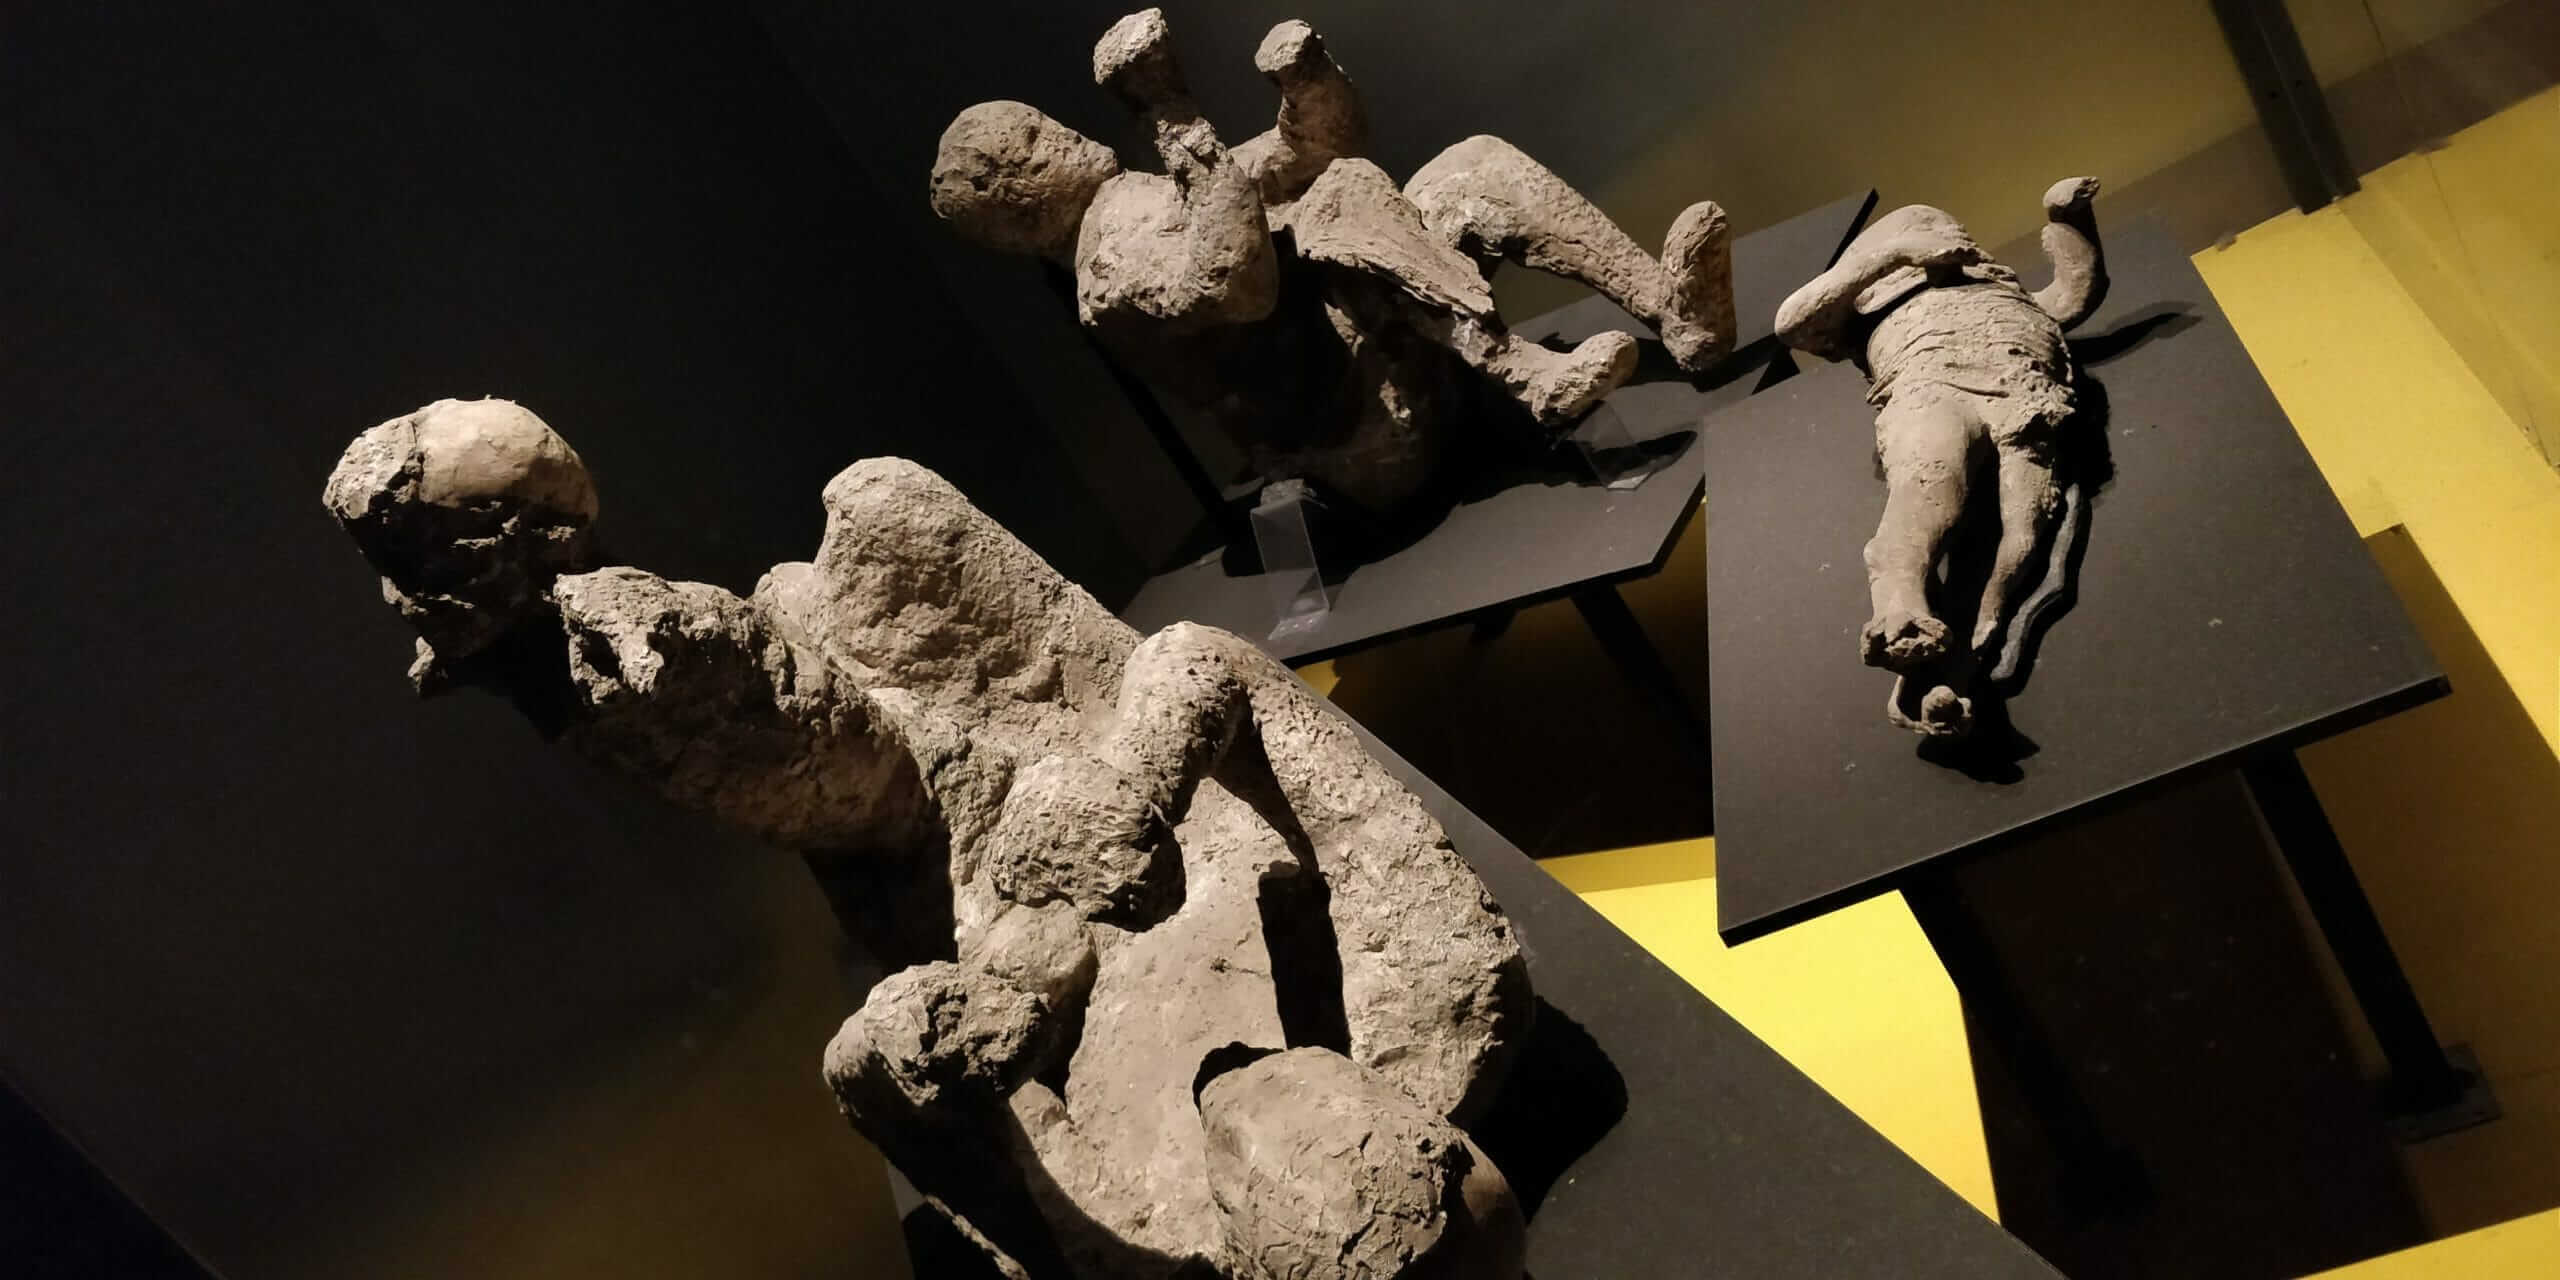 Preserved Pompeii bodies in plaster casts at museum